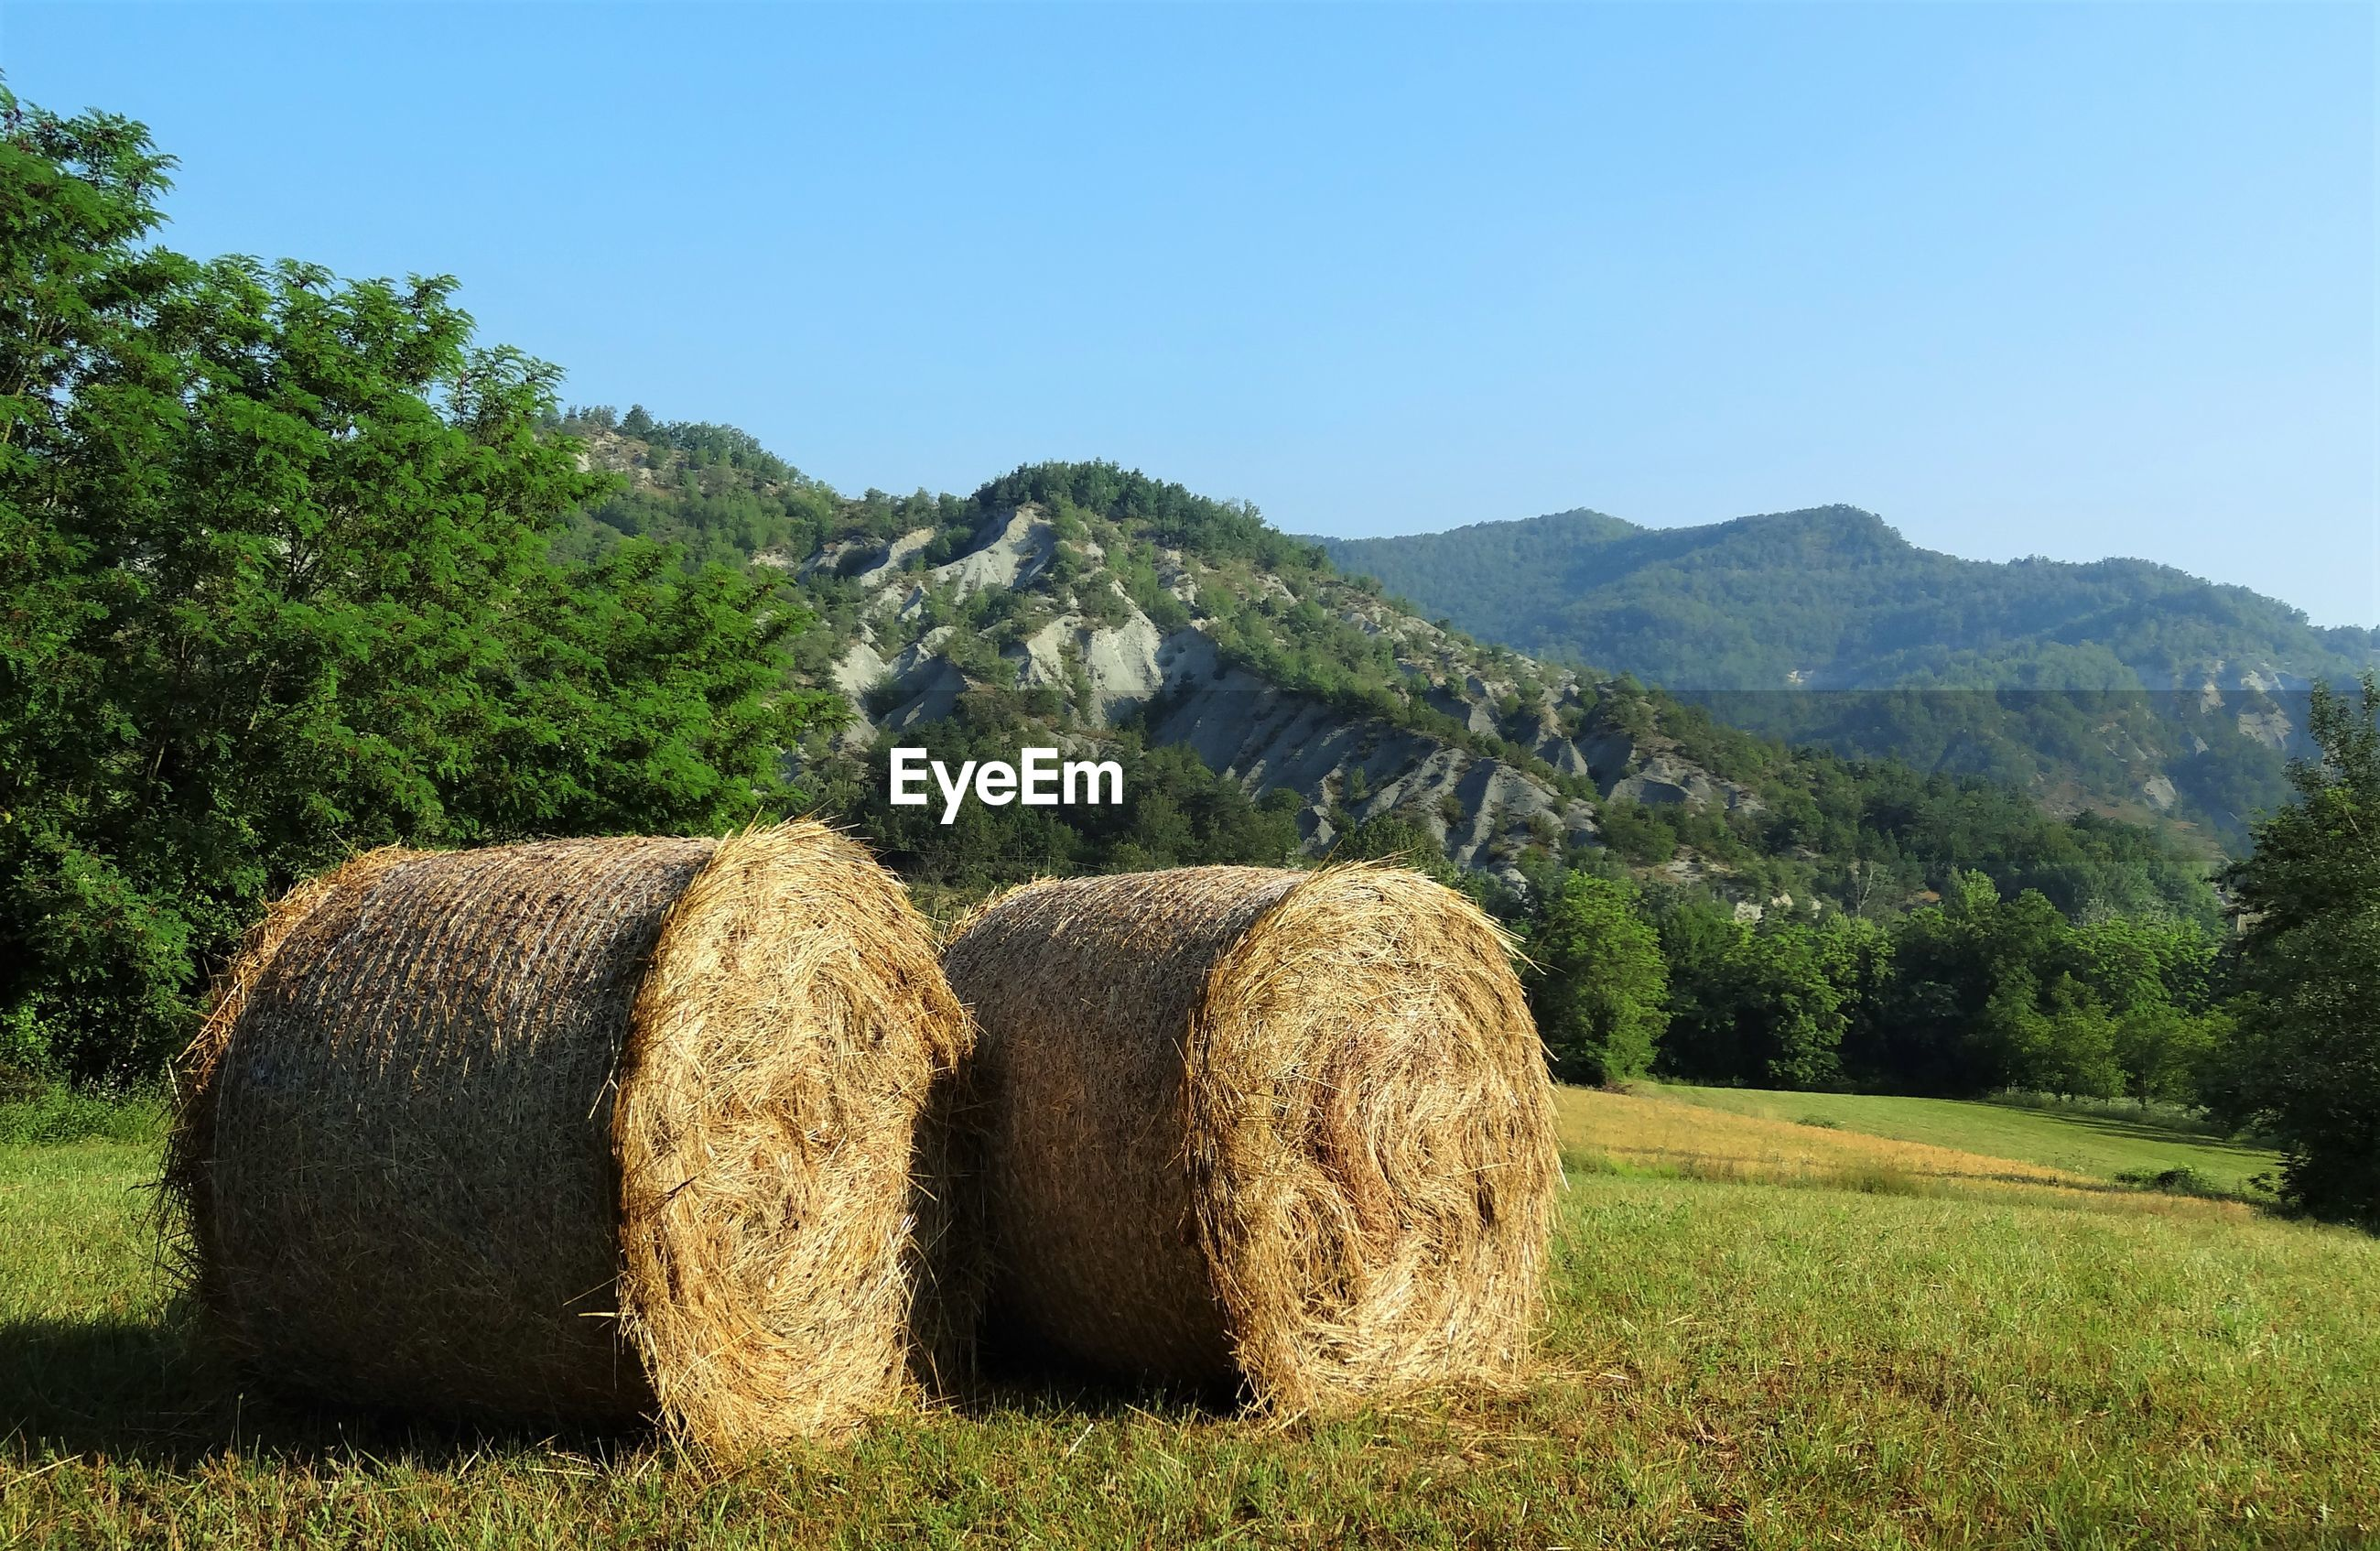 Hay bales on grassy field by mountains against clear sky